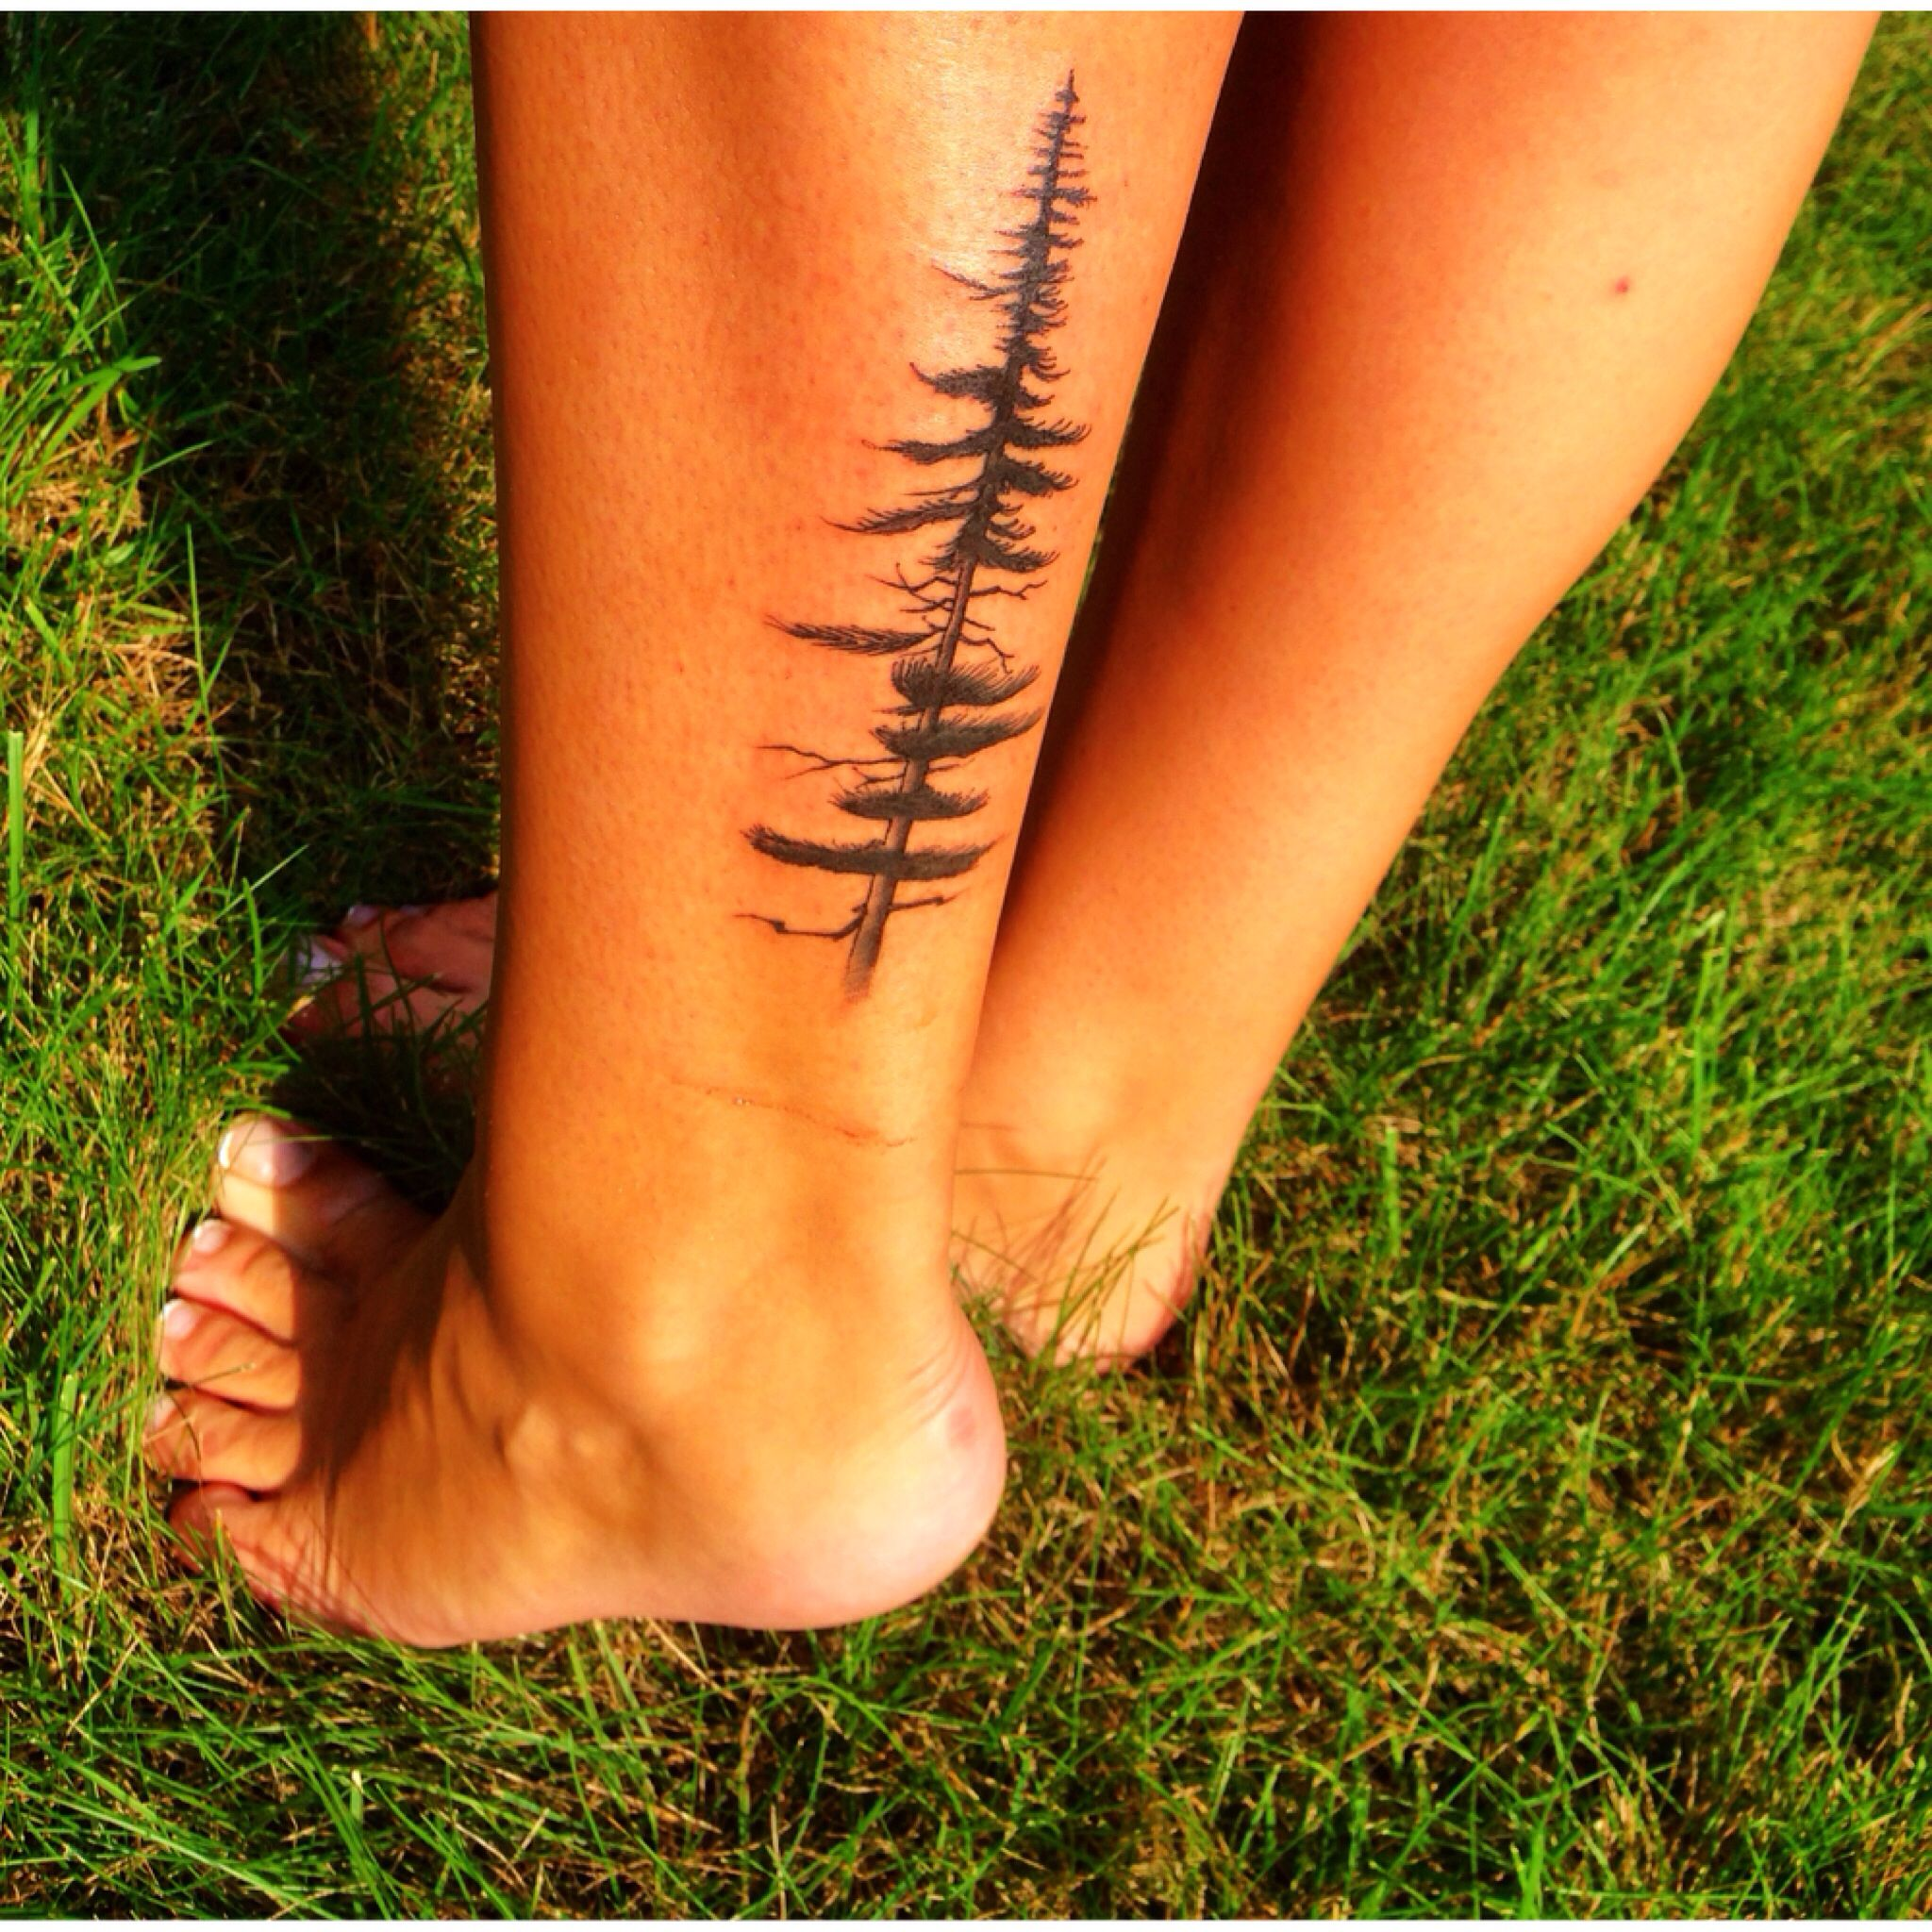 My most recent addition; Pine tree tattoo. For the love of